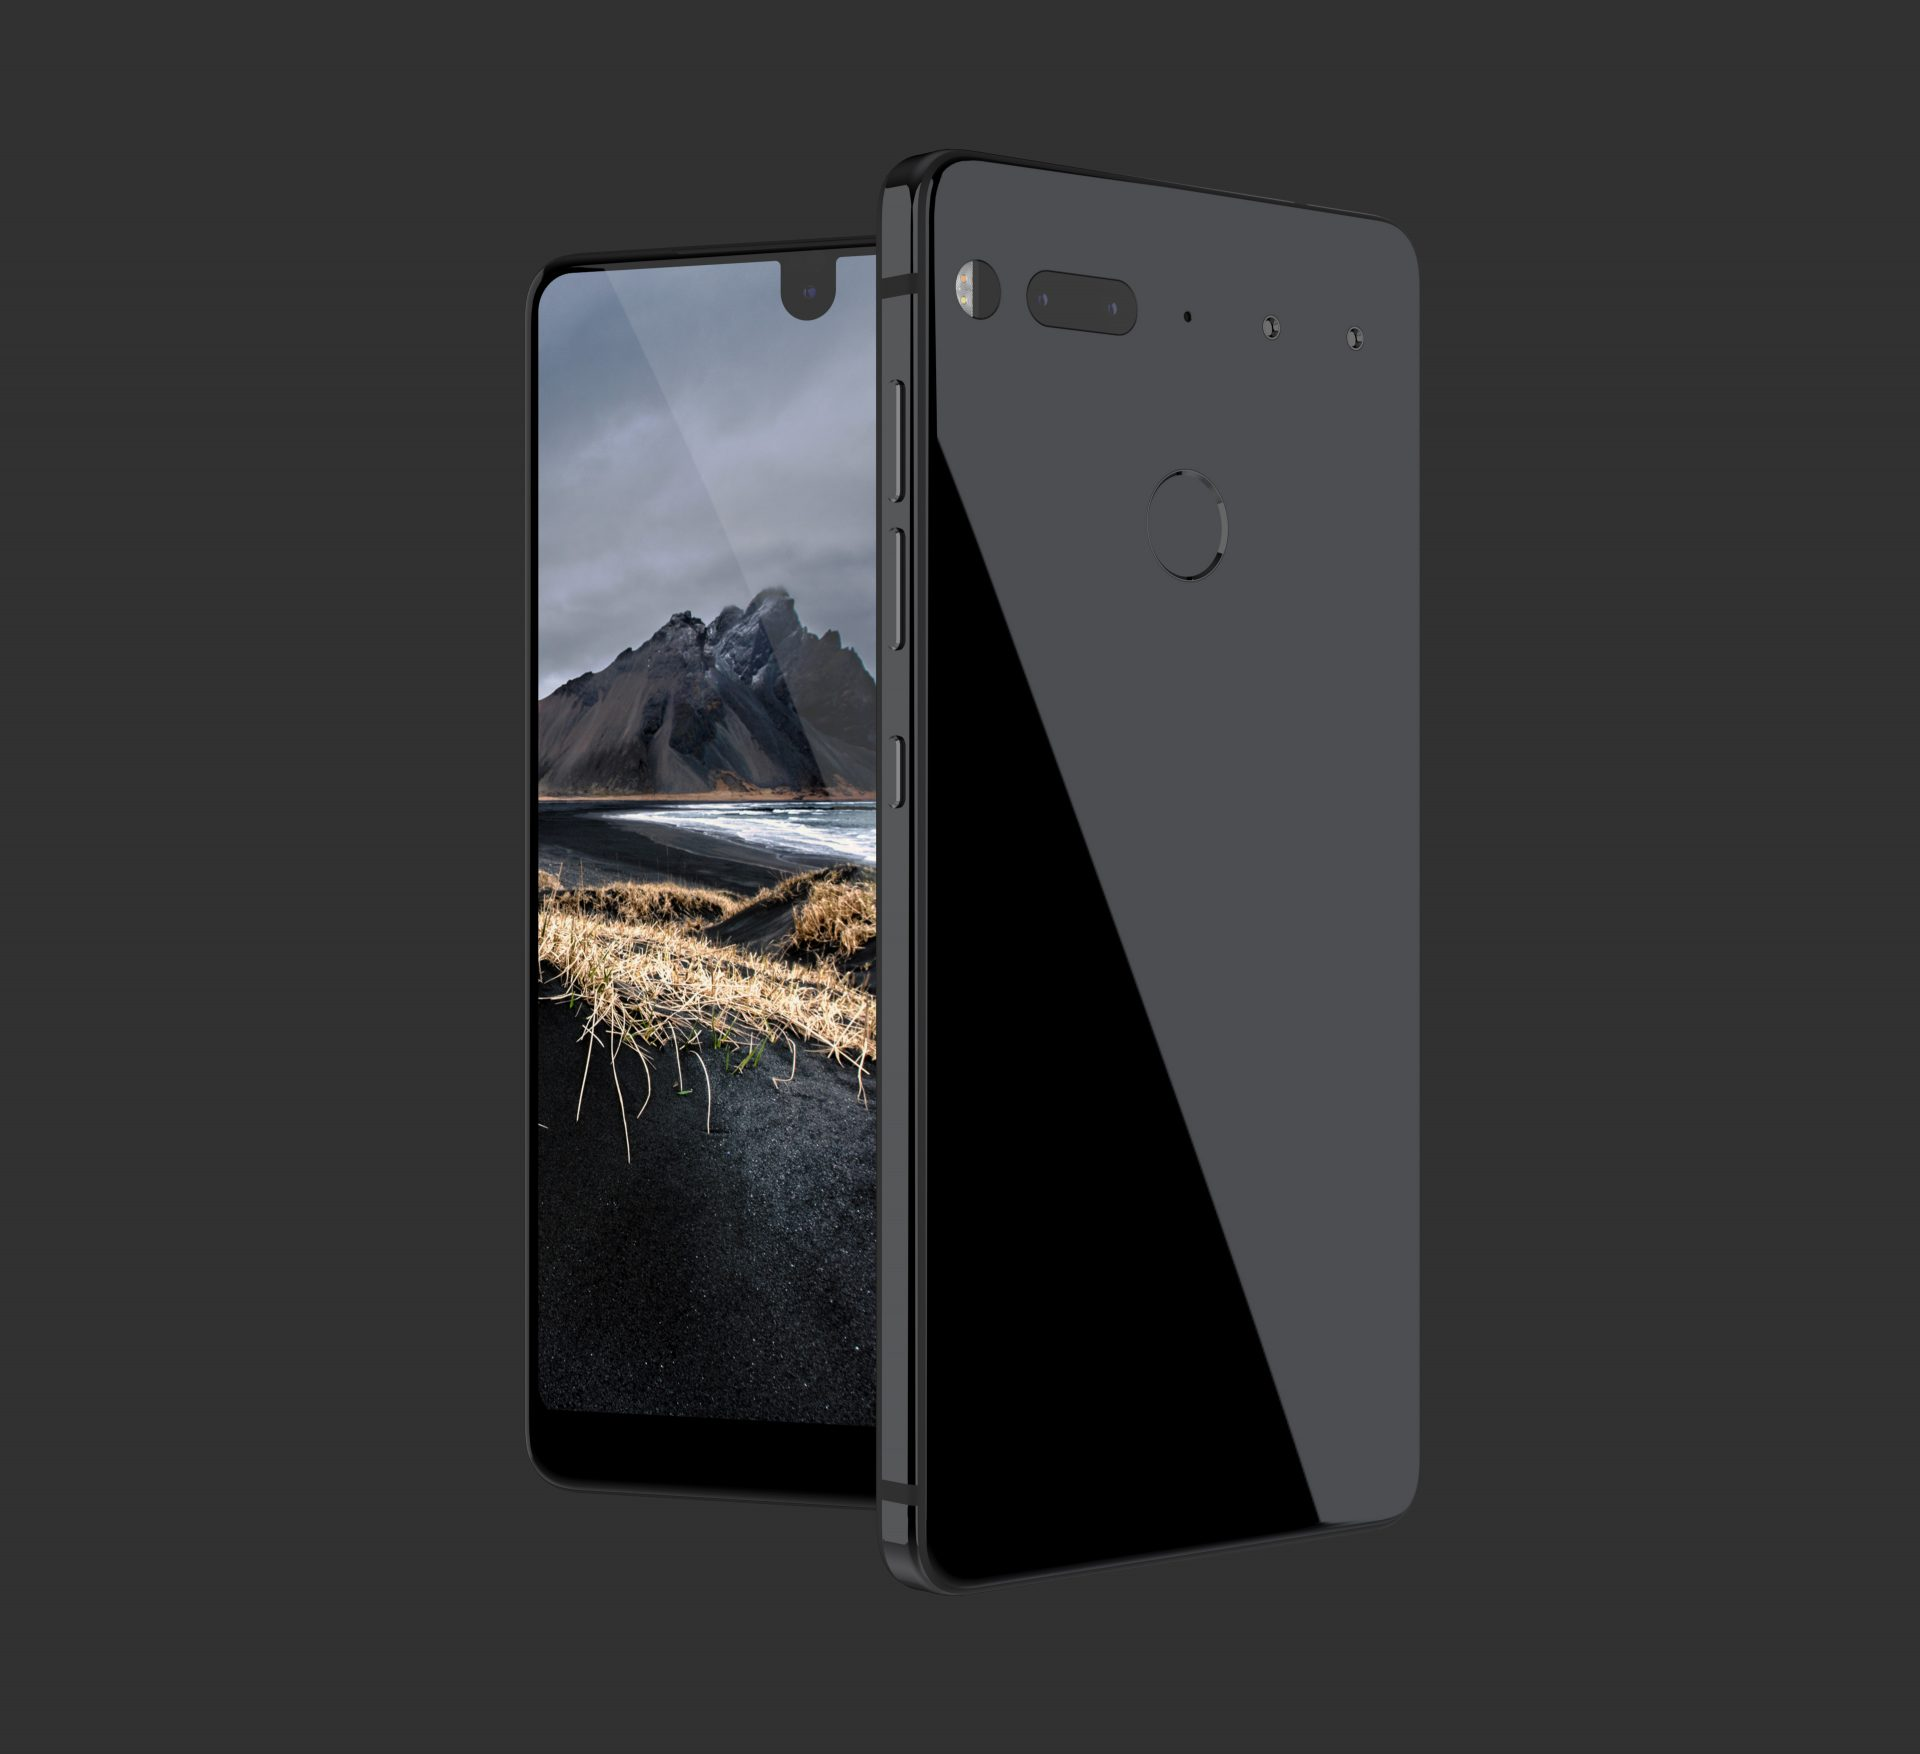 Essential by Andy Rubin